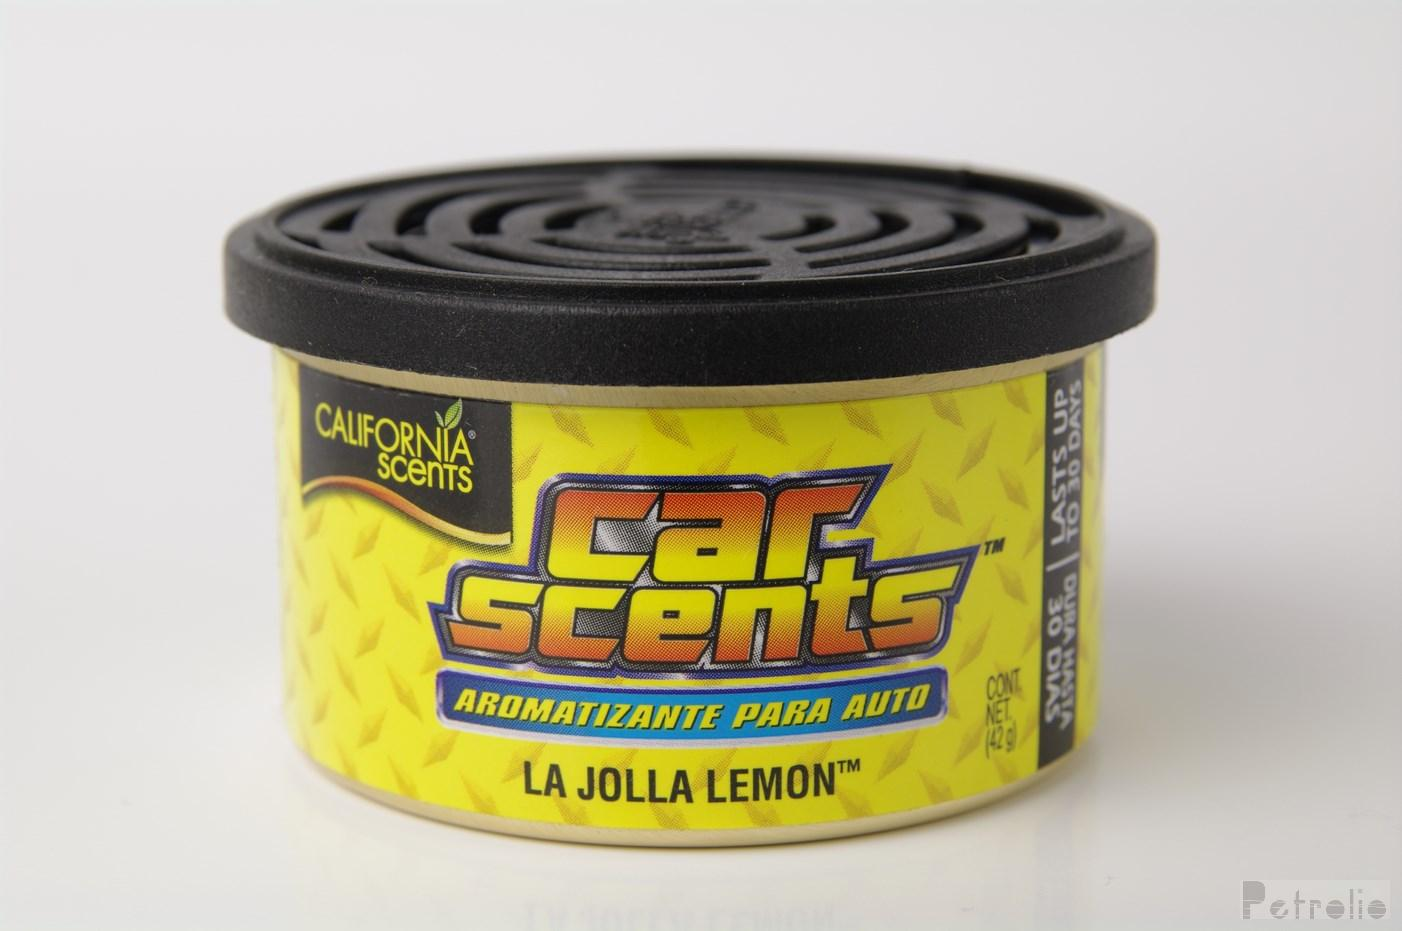 California Scents Car Scents - Citron (La Jolla Lemon)  42 g